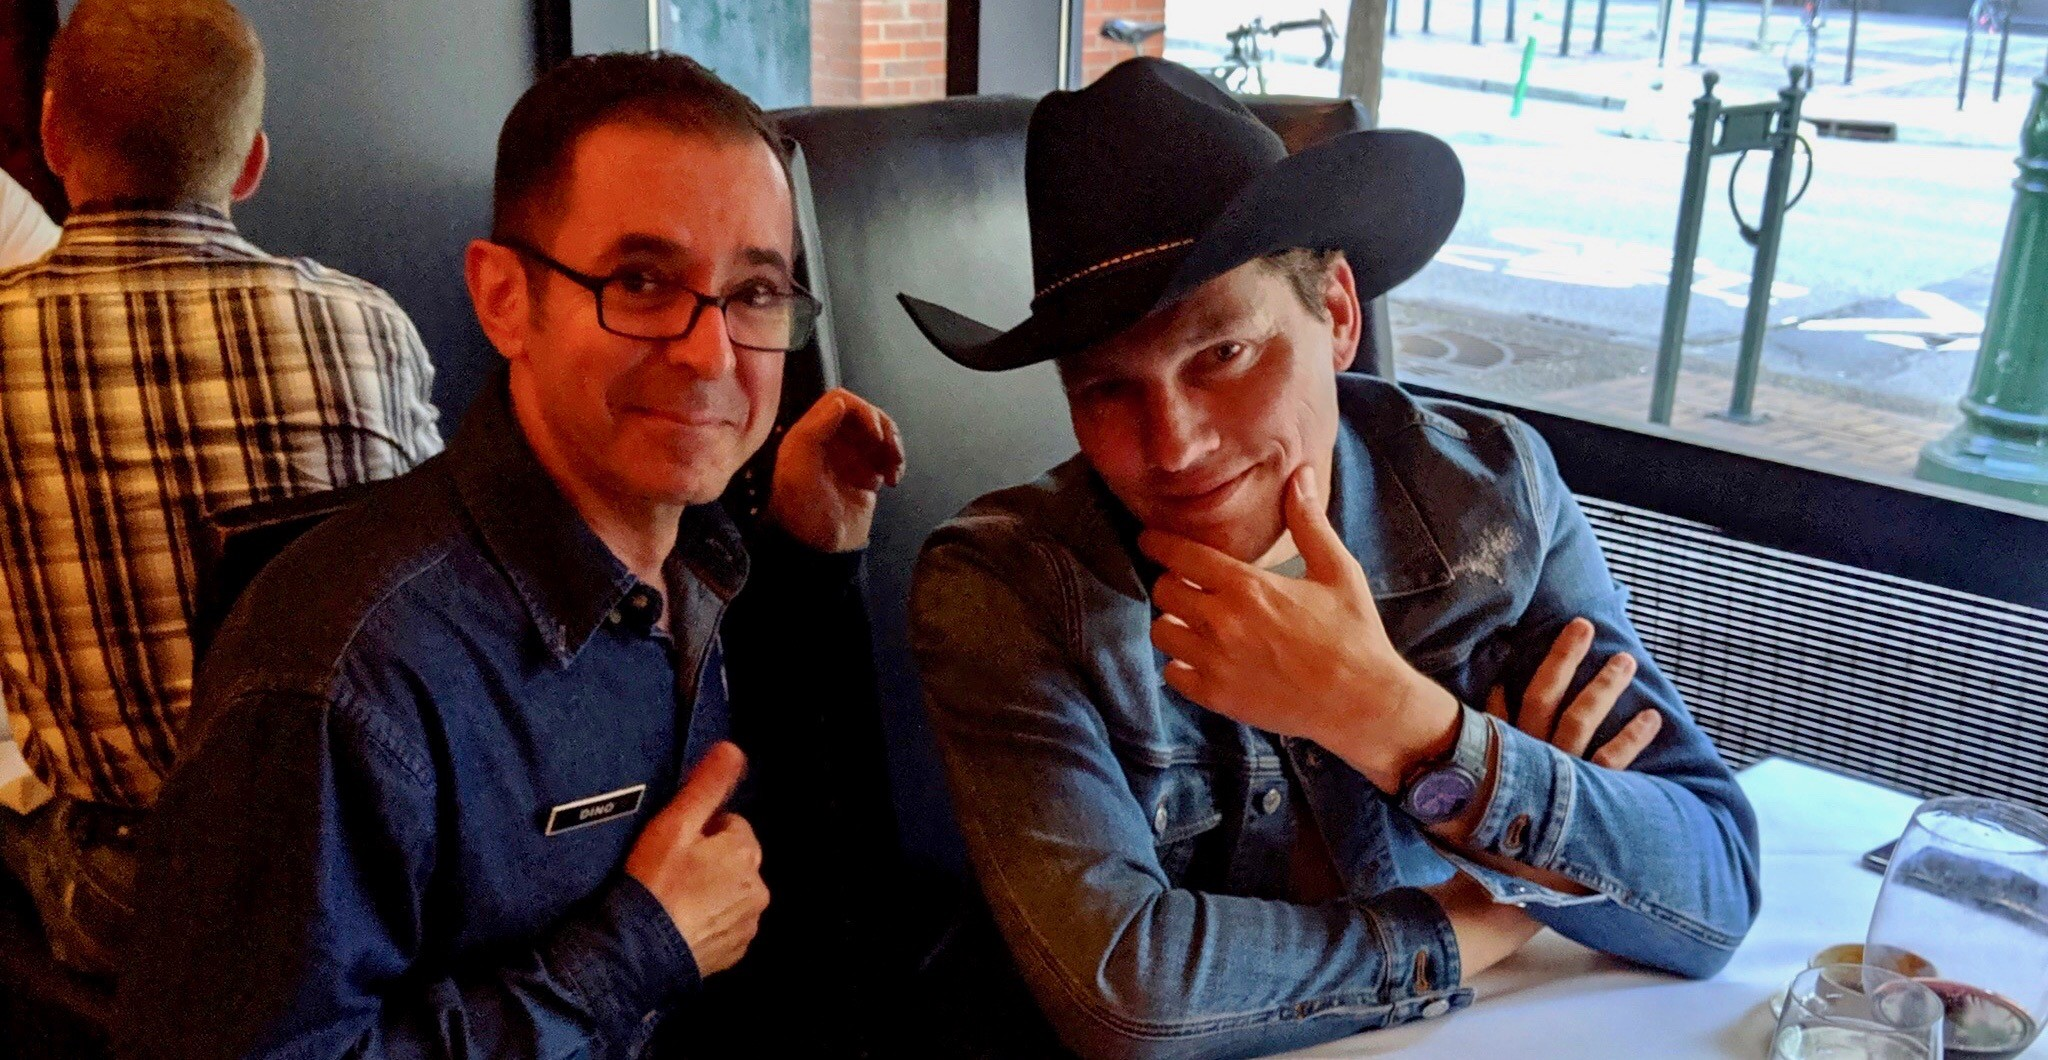 DJ Tiësto was just spotted at Hy's Steakhouse in Calgary (PHOTO)